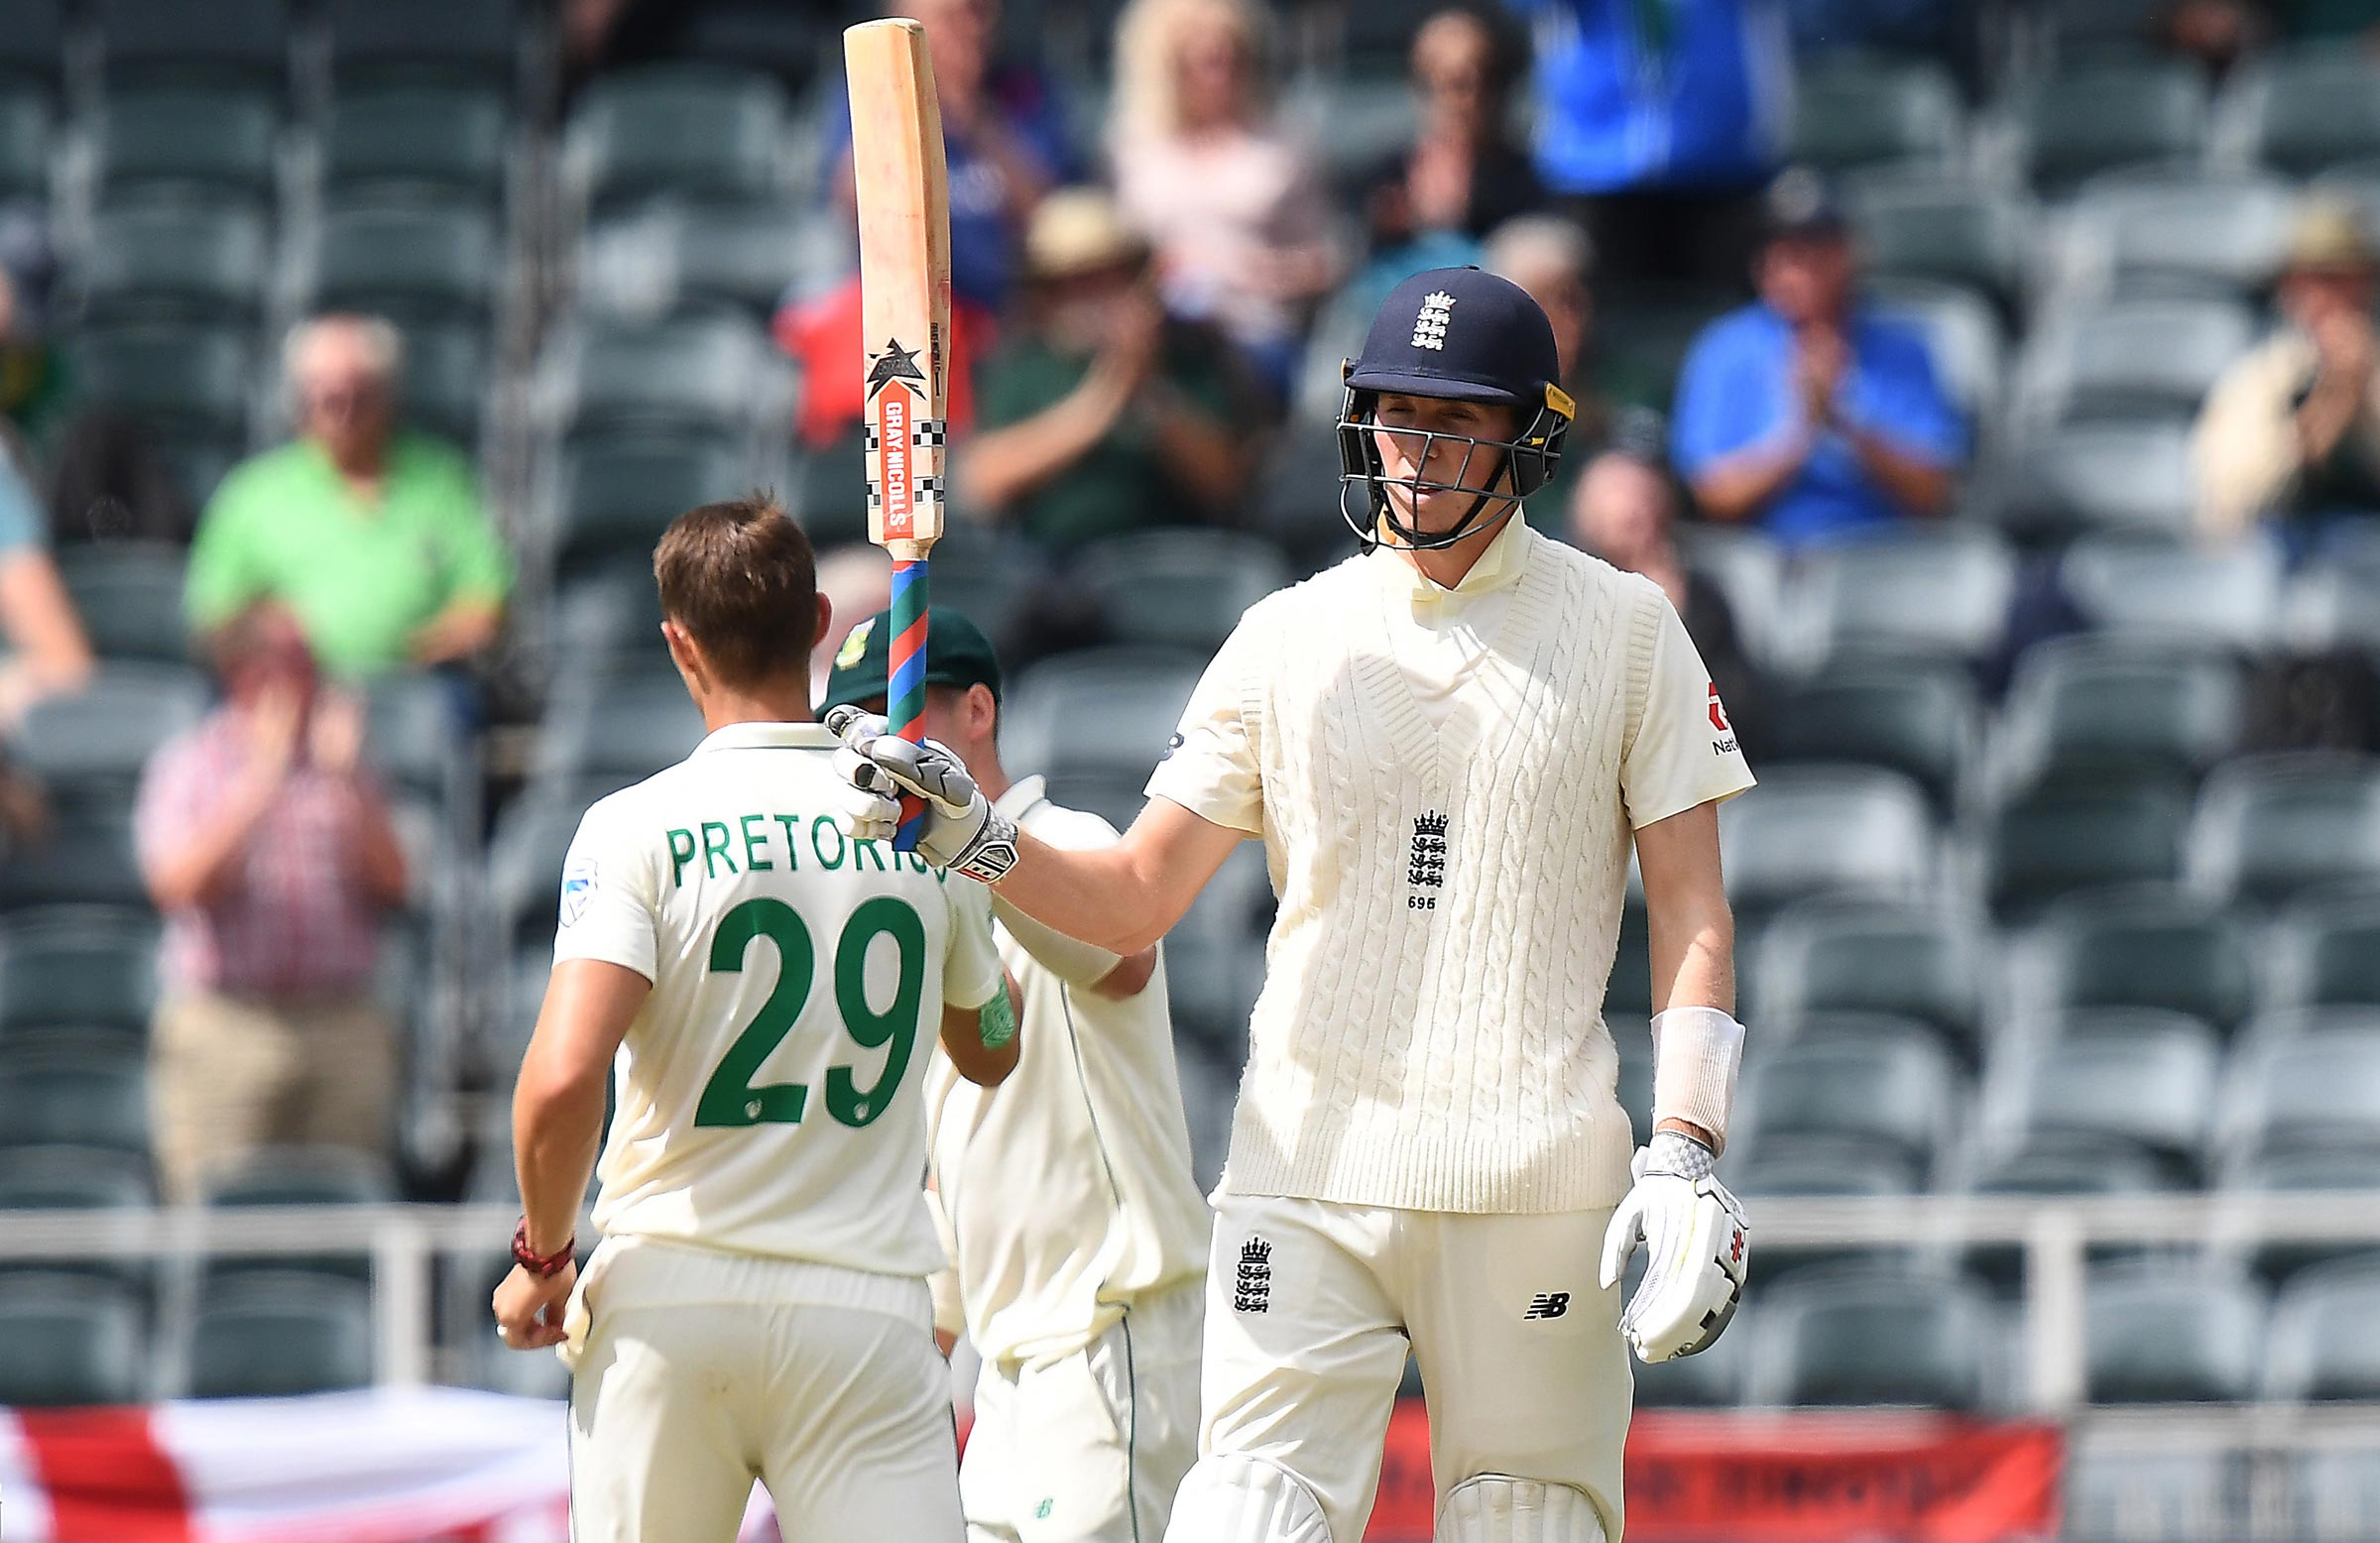 Crawley celebrates his fifty in Johannesburg // Getty